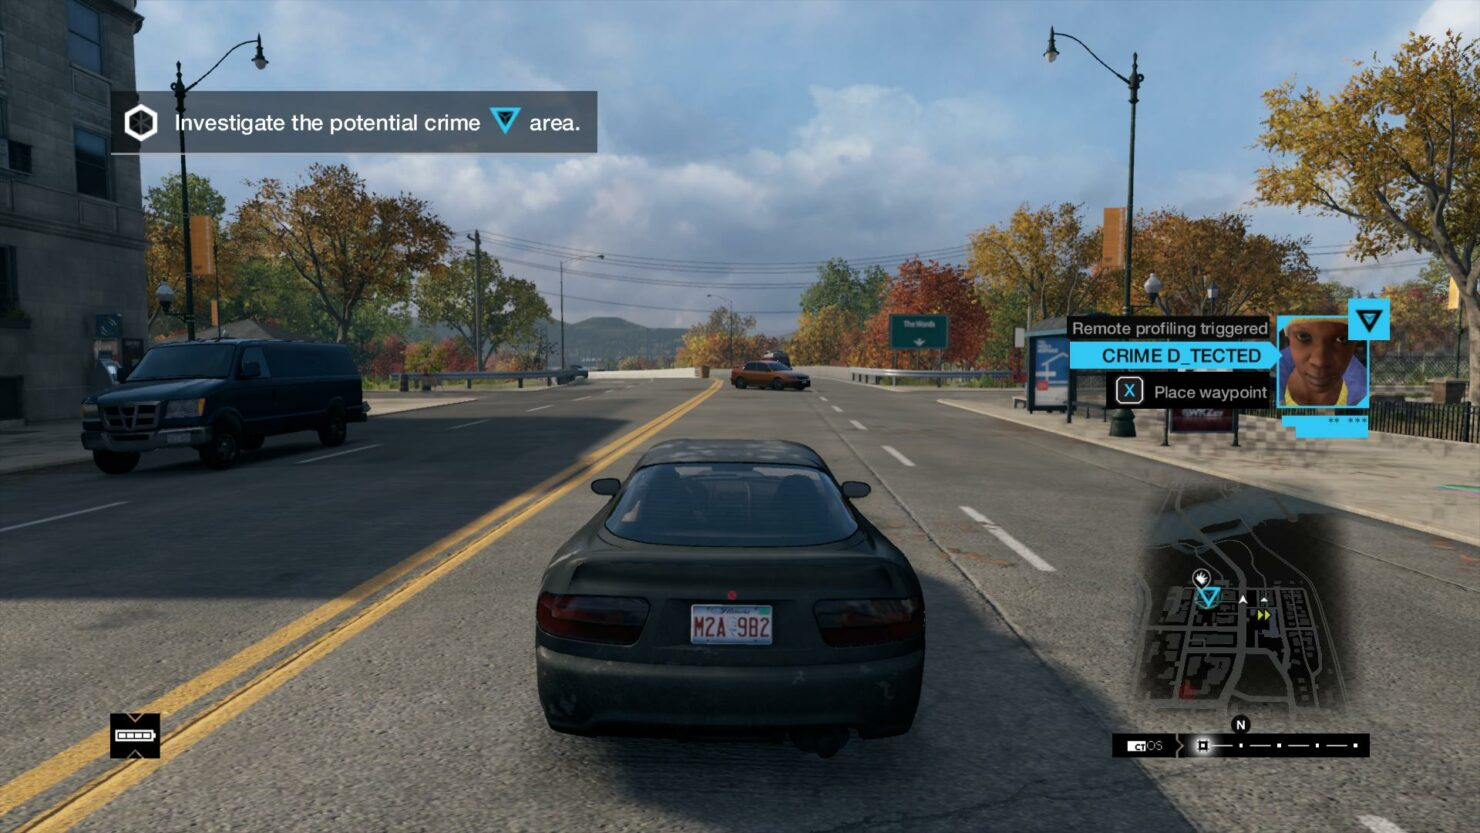 watch_dogs-2014-05-24-12-03-18-34